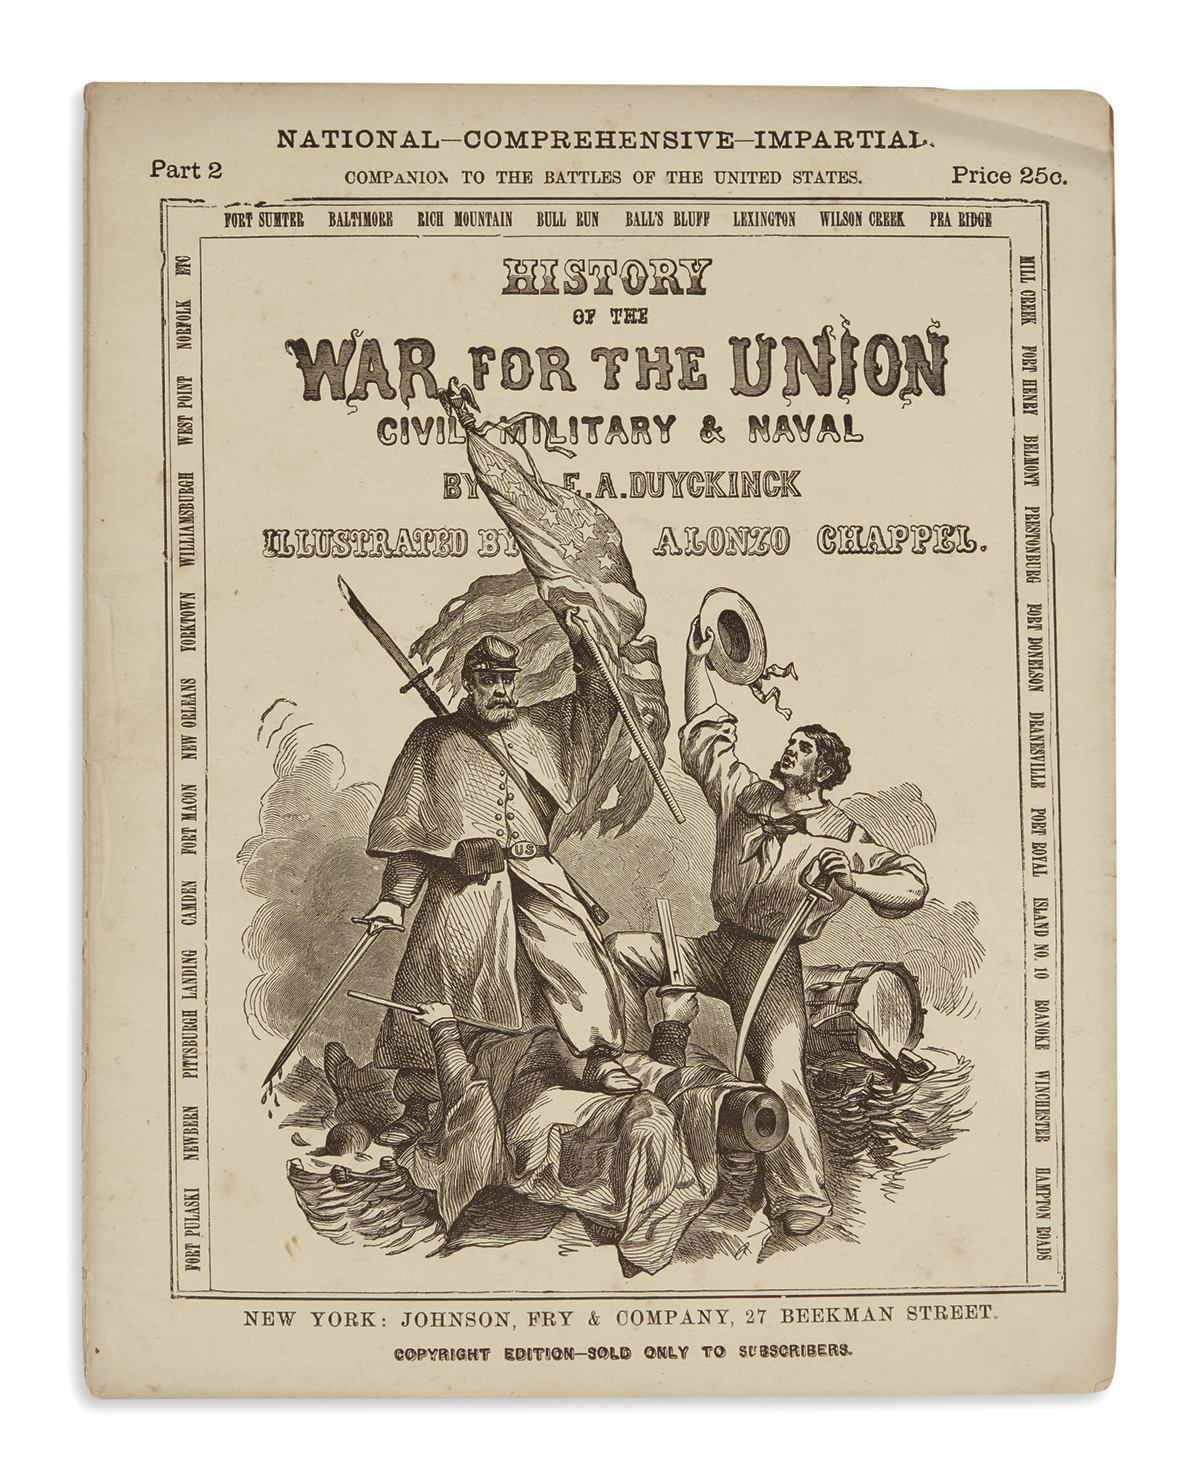 (BOOKS-AND-PAMPHLETS)-Group-of-Lincoln-related-books